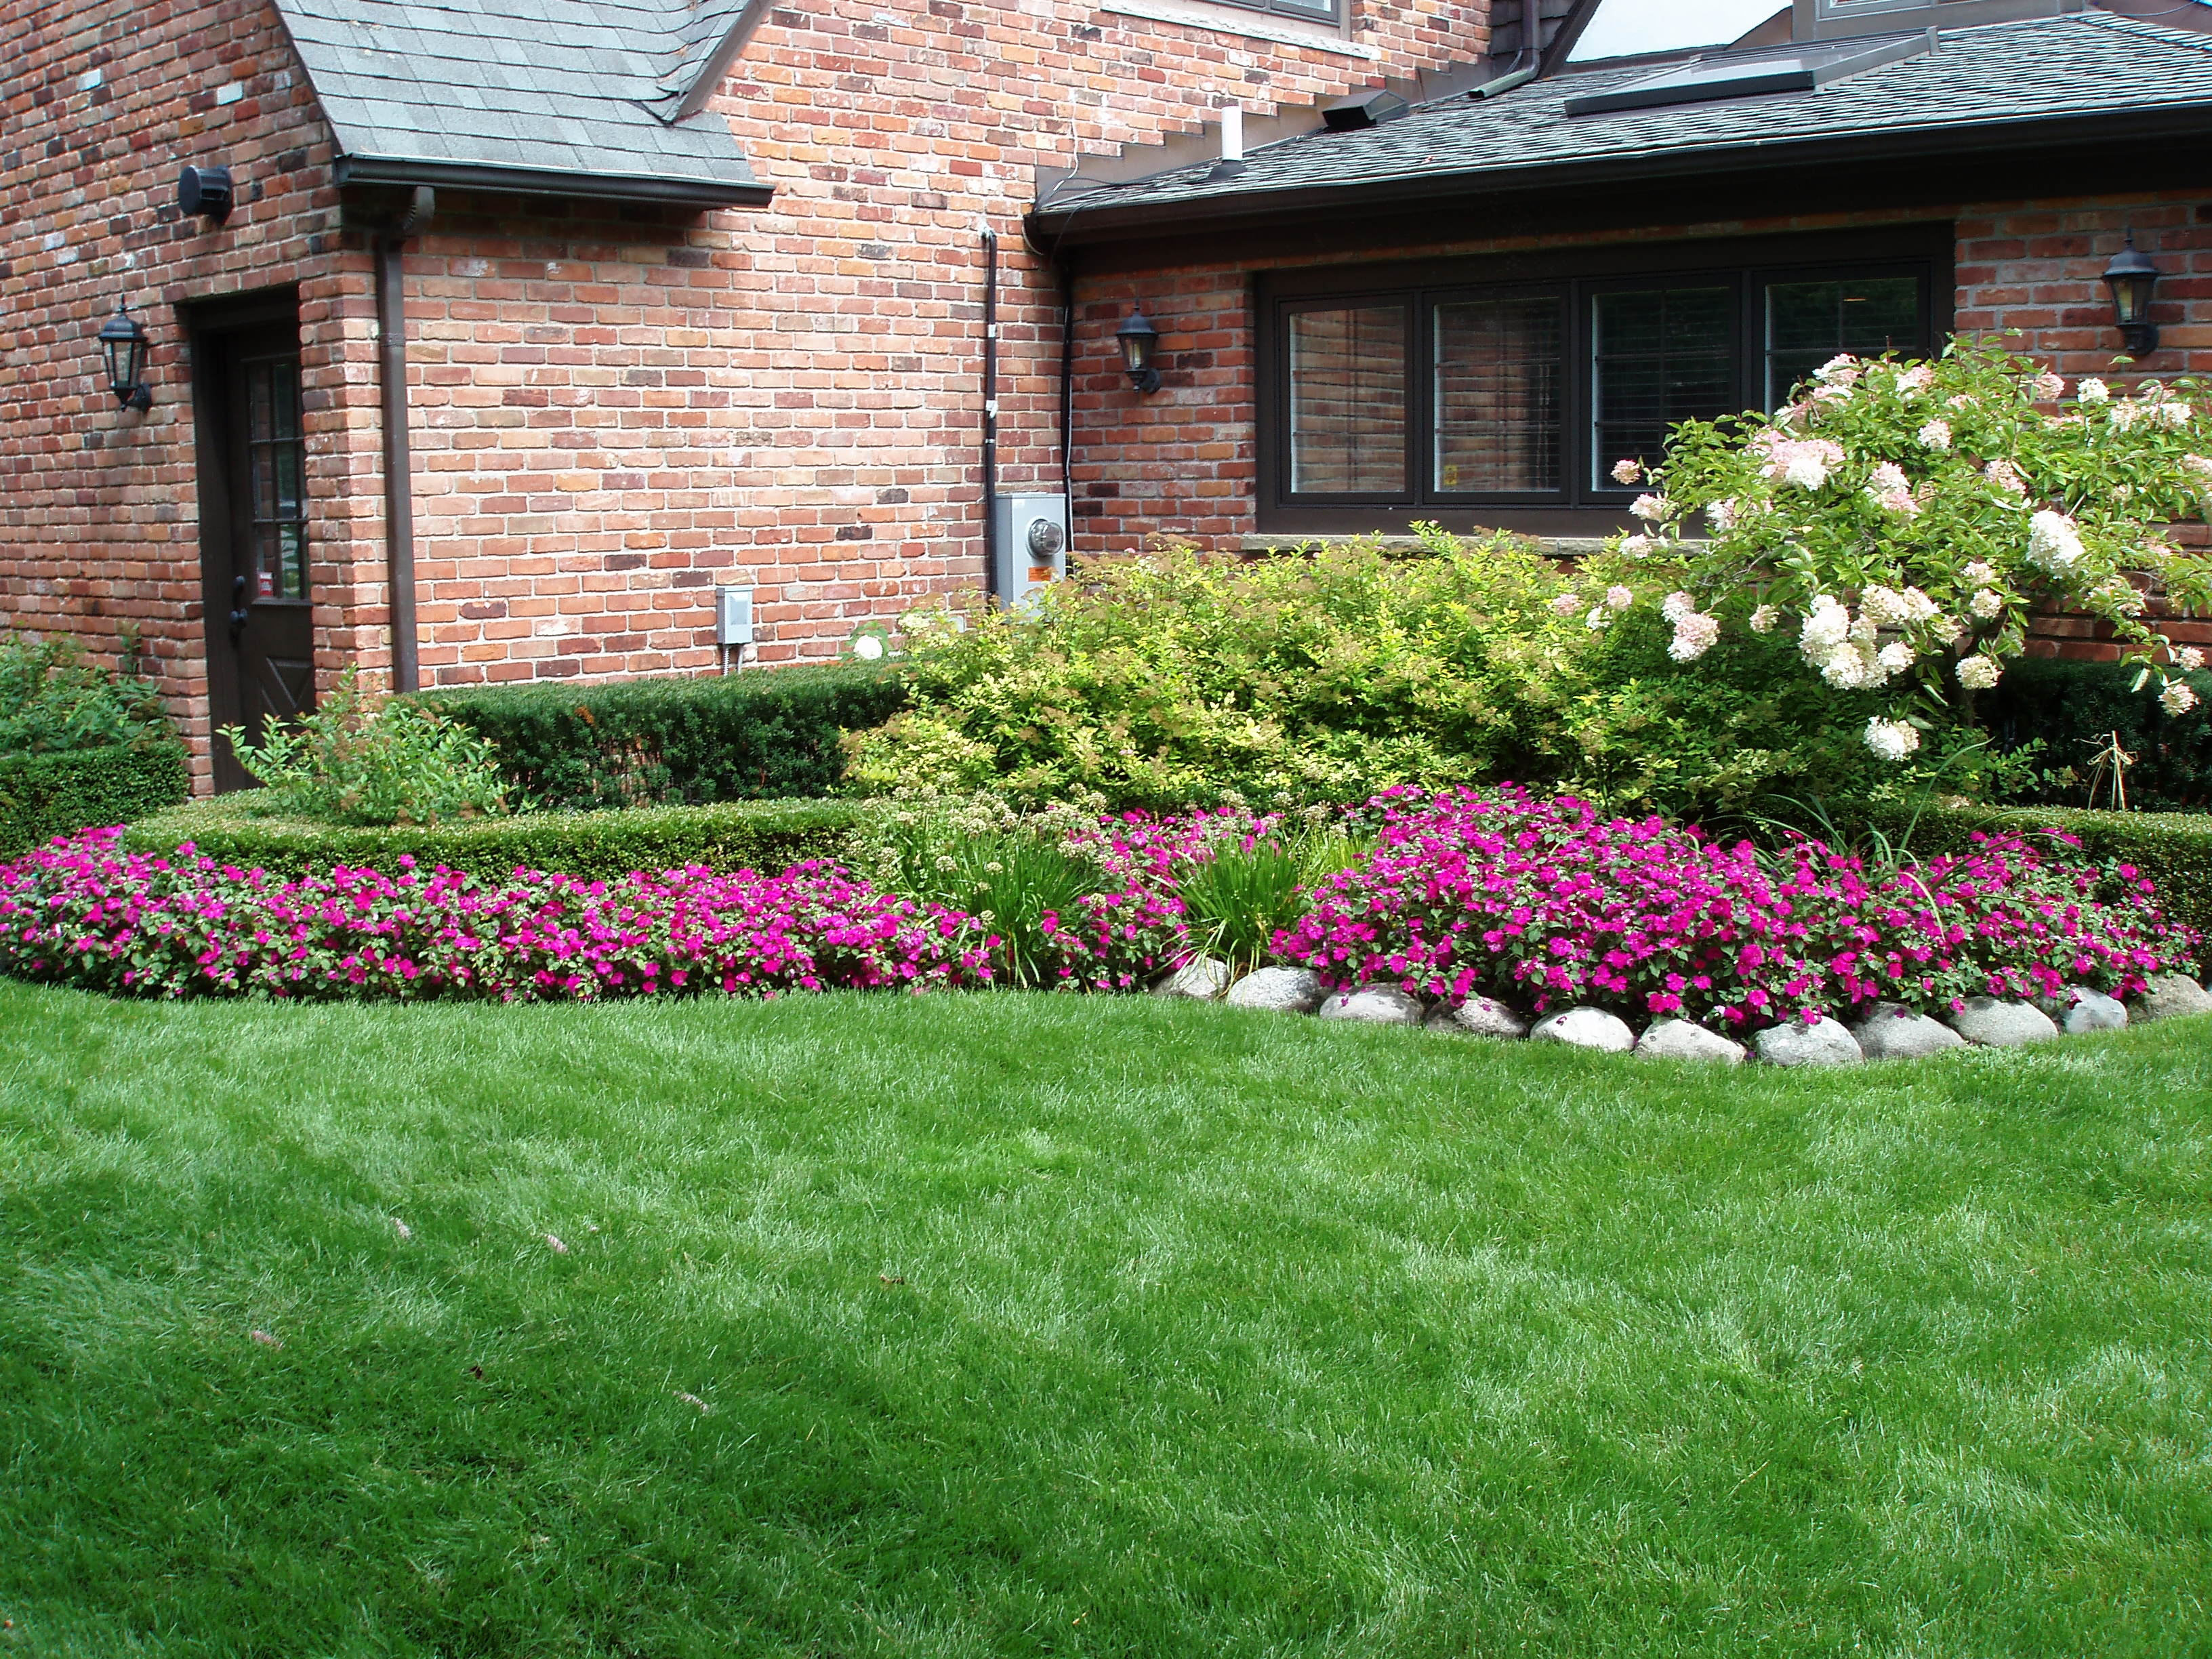 Perennials total lawn care inc full lawn maintenance for Outside landscaping ideas